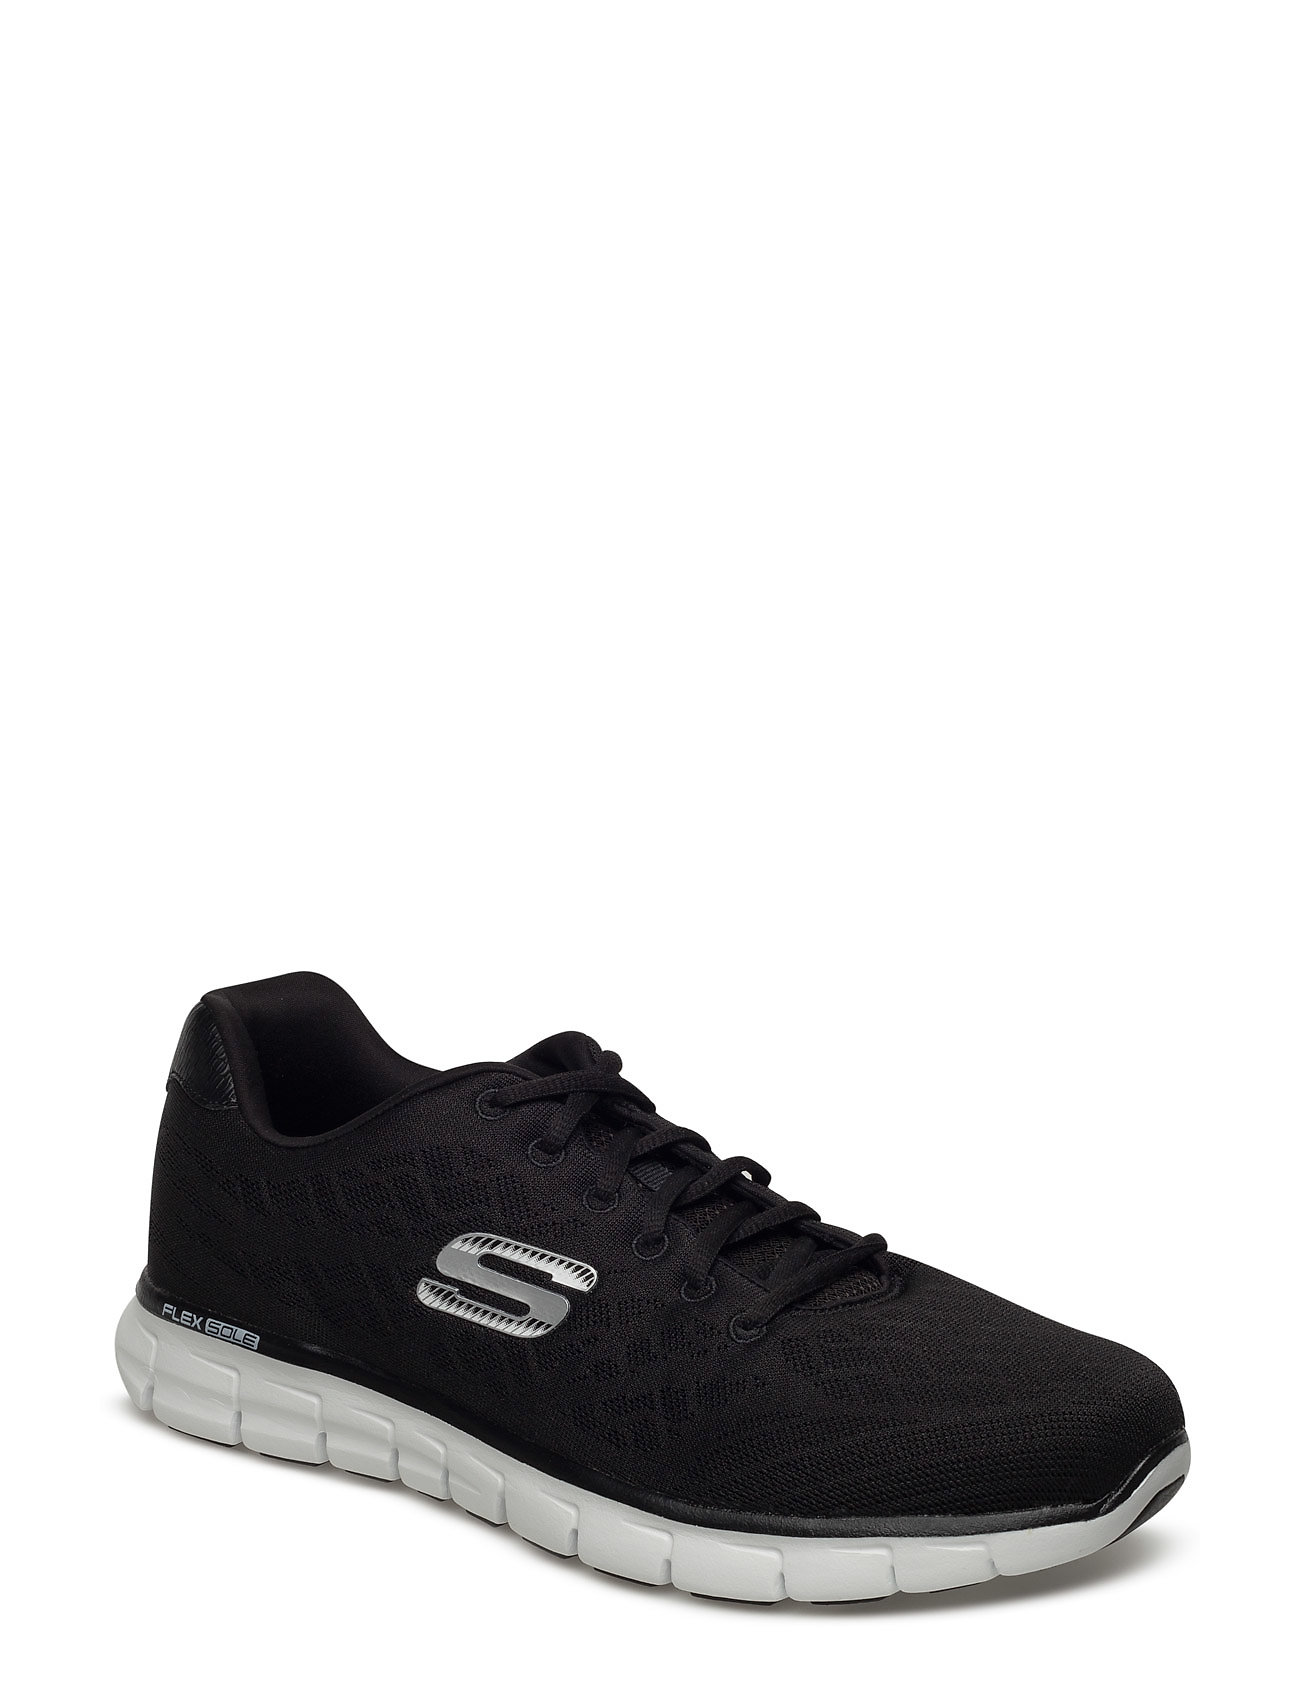 Mens Synergy Fine Tune Skechers Sneakers til Herrer i